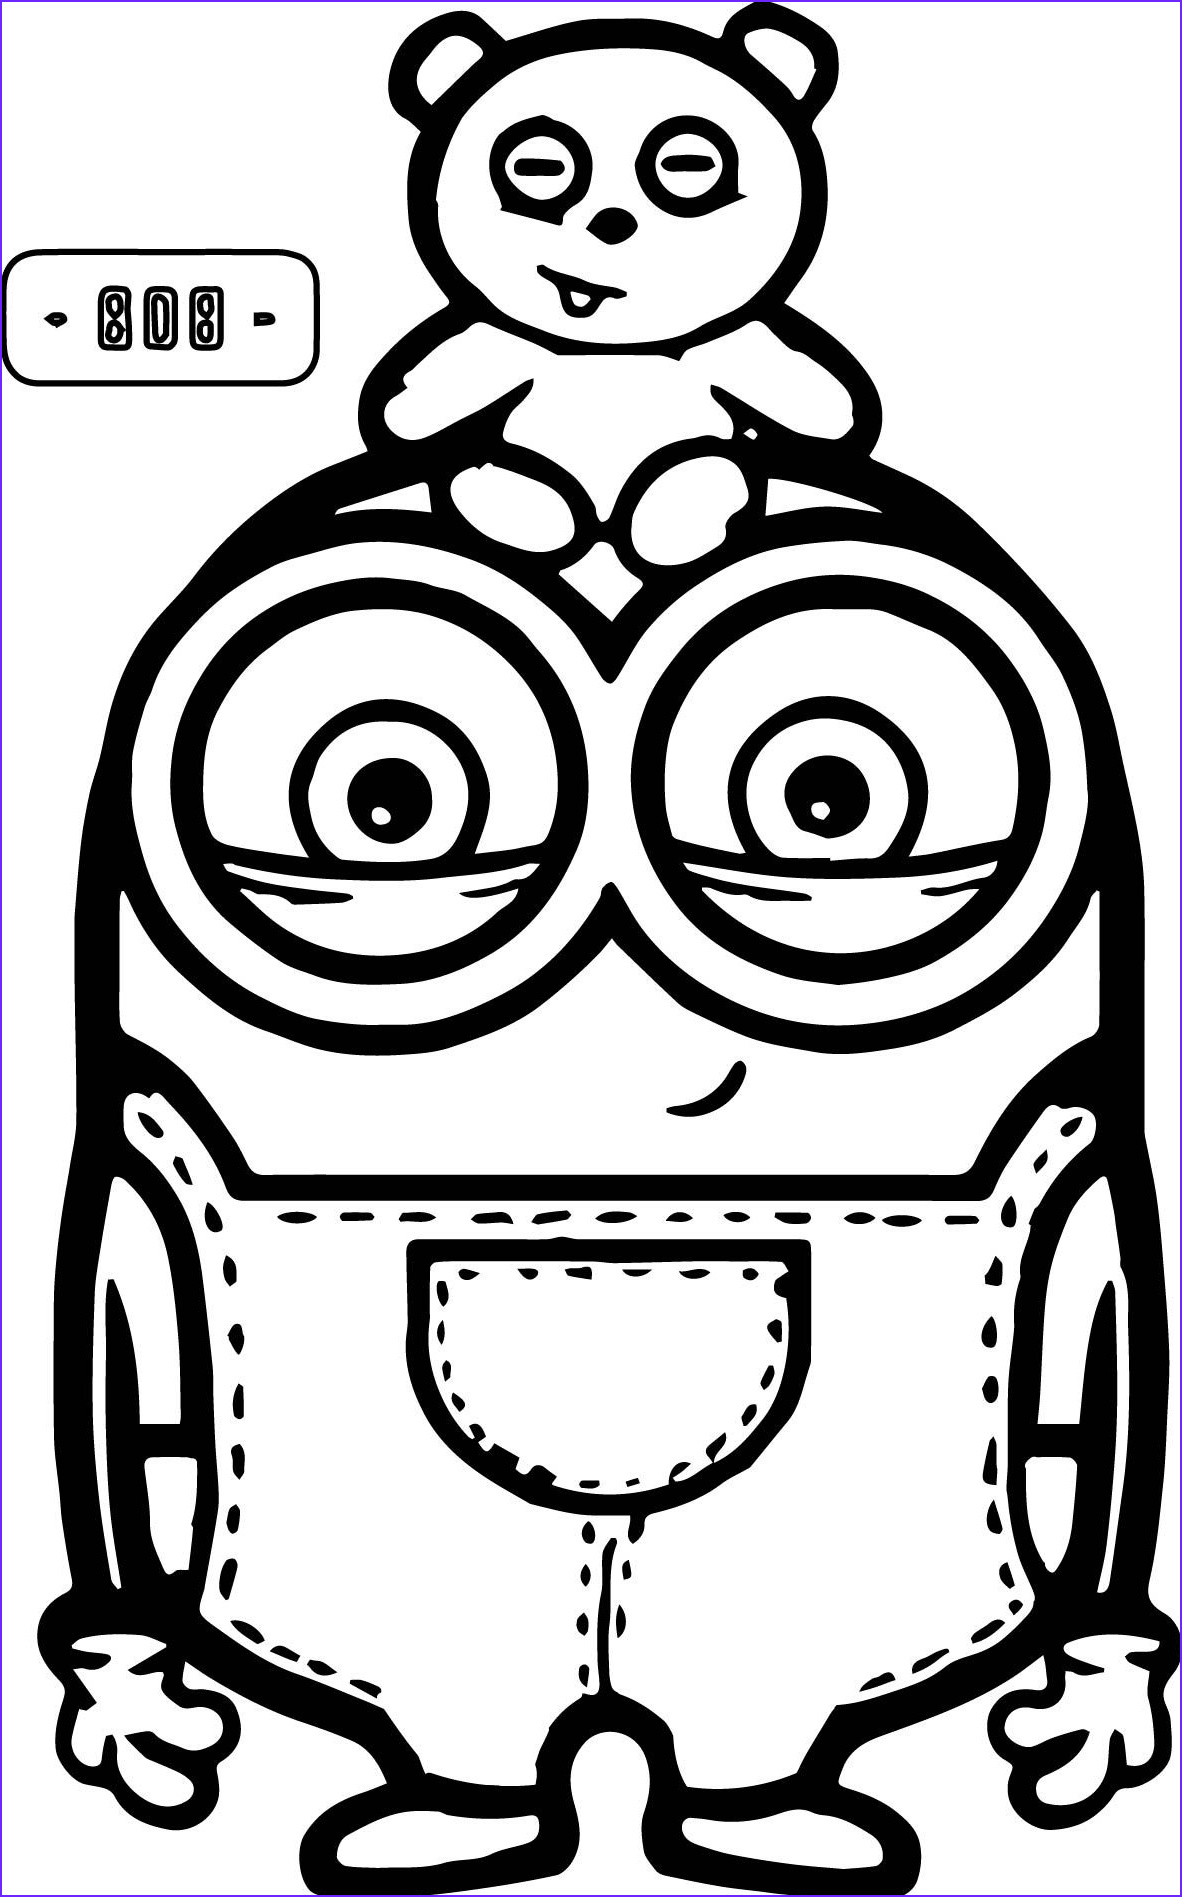 Free Printable Minion Coloring Page Luxury Image Cute Bob and Bear Minions Coloring Page